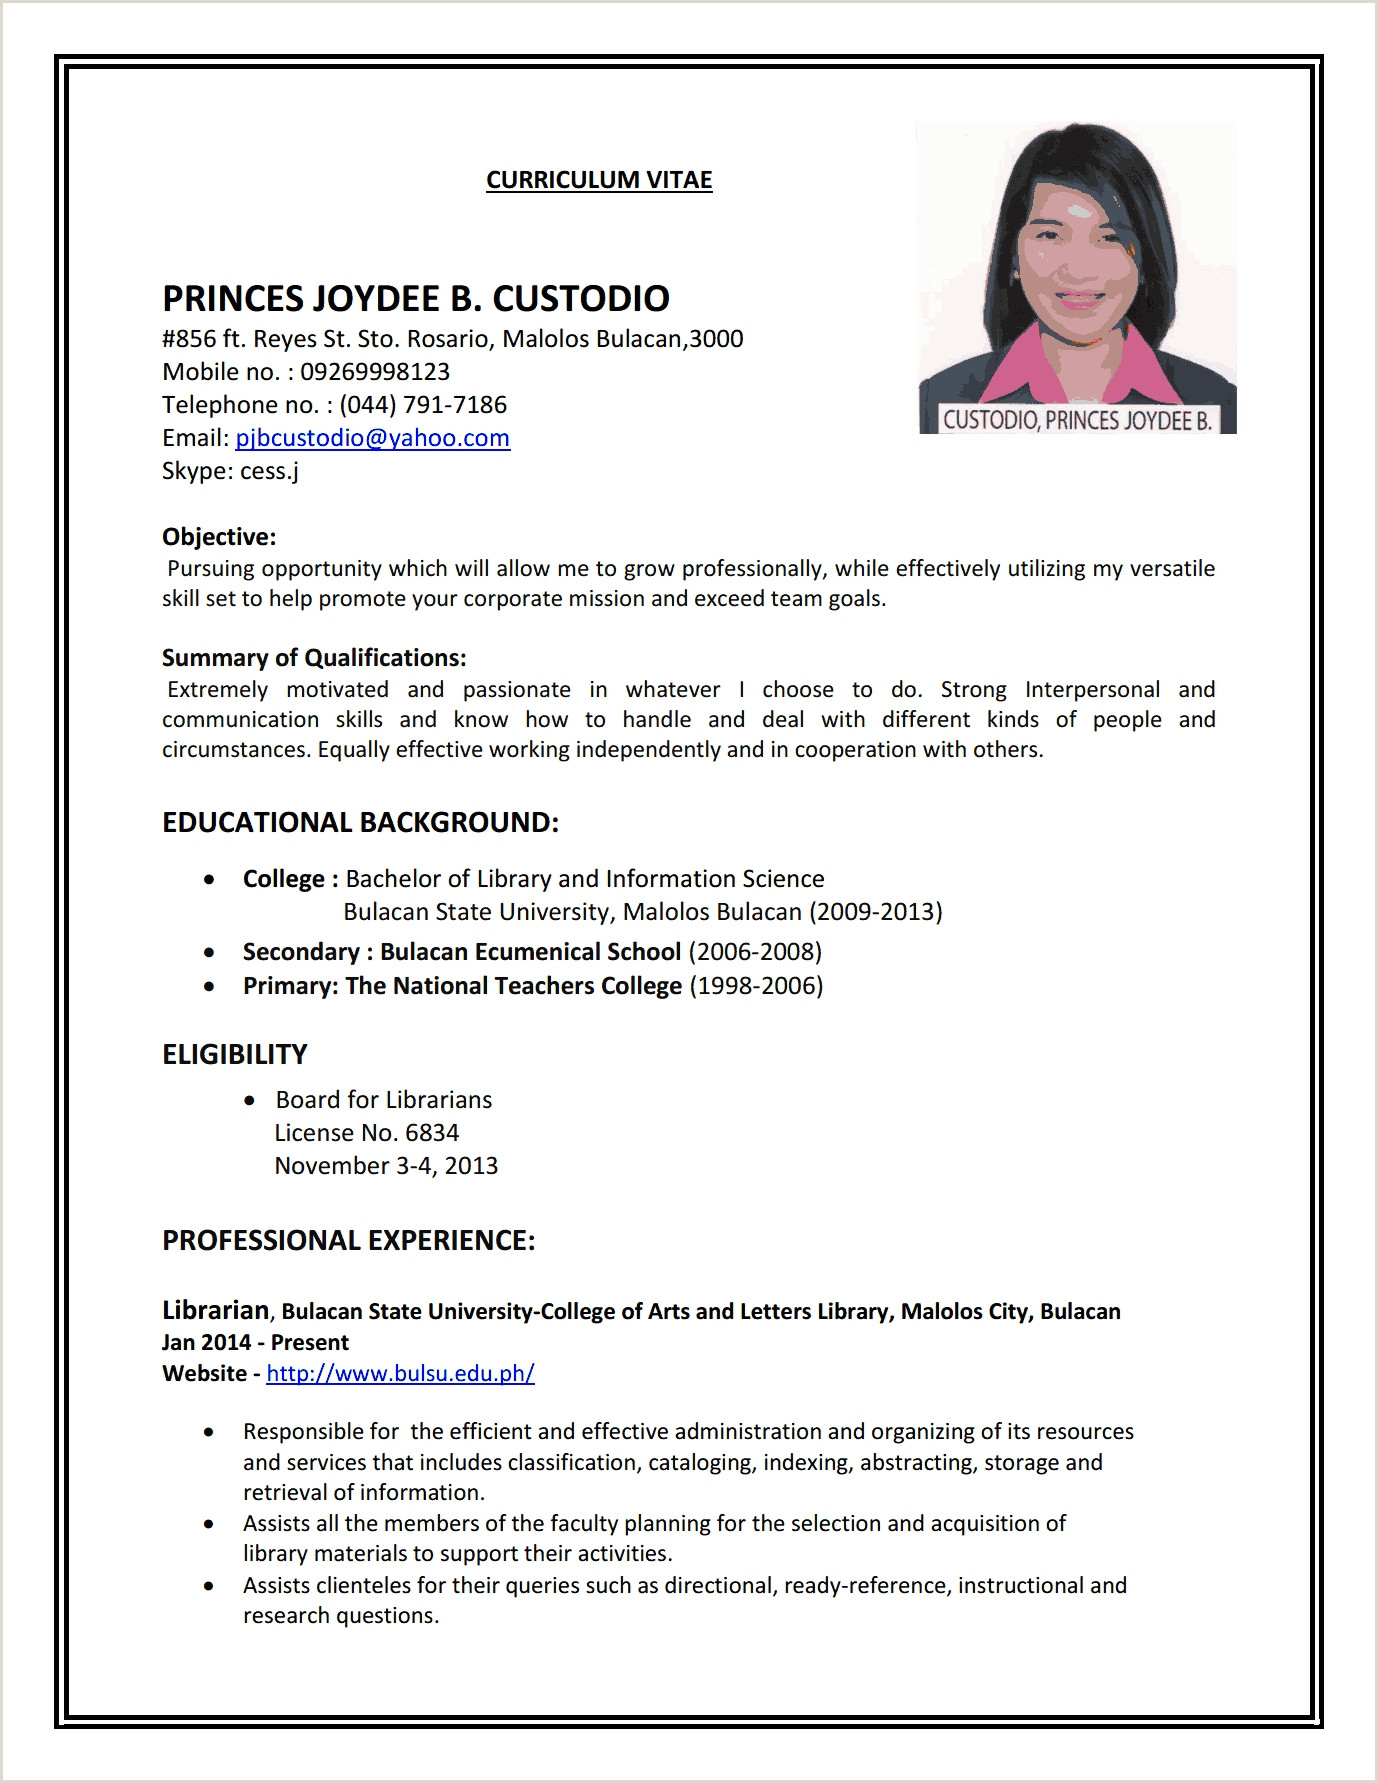 Resume format for Applying Job Abroad Application Letter for Jobs Abroad Resume format Applying